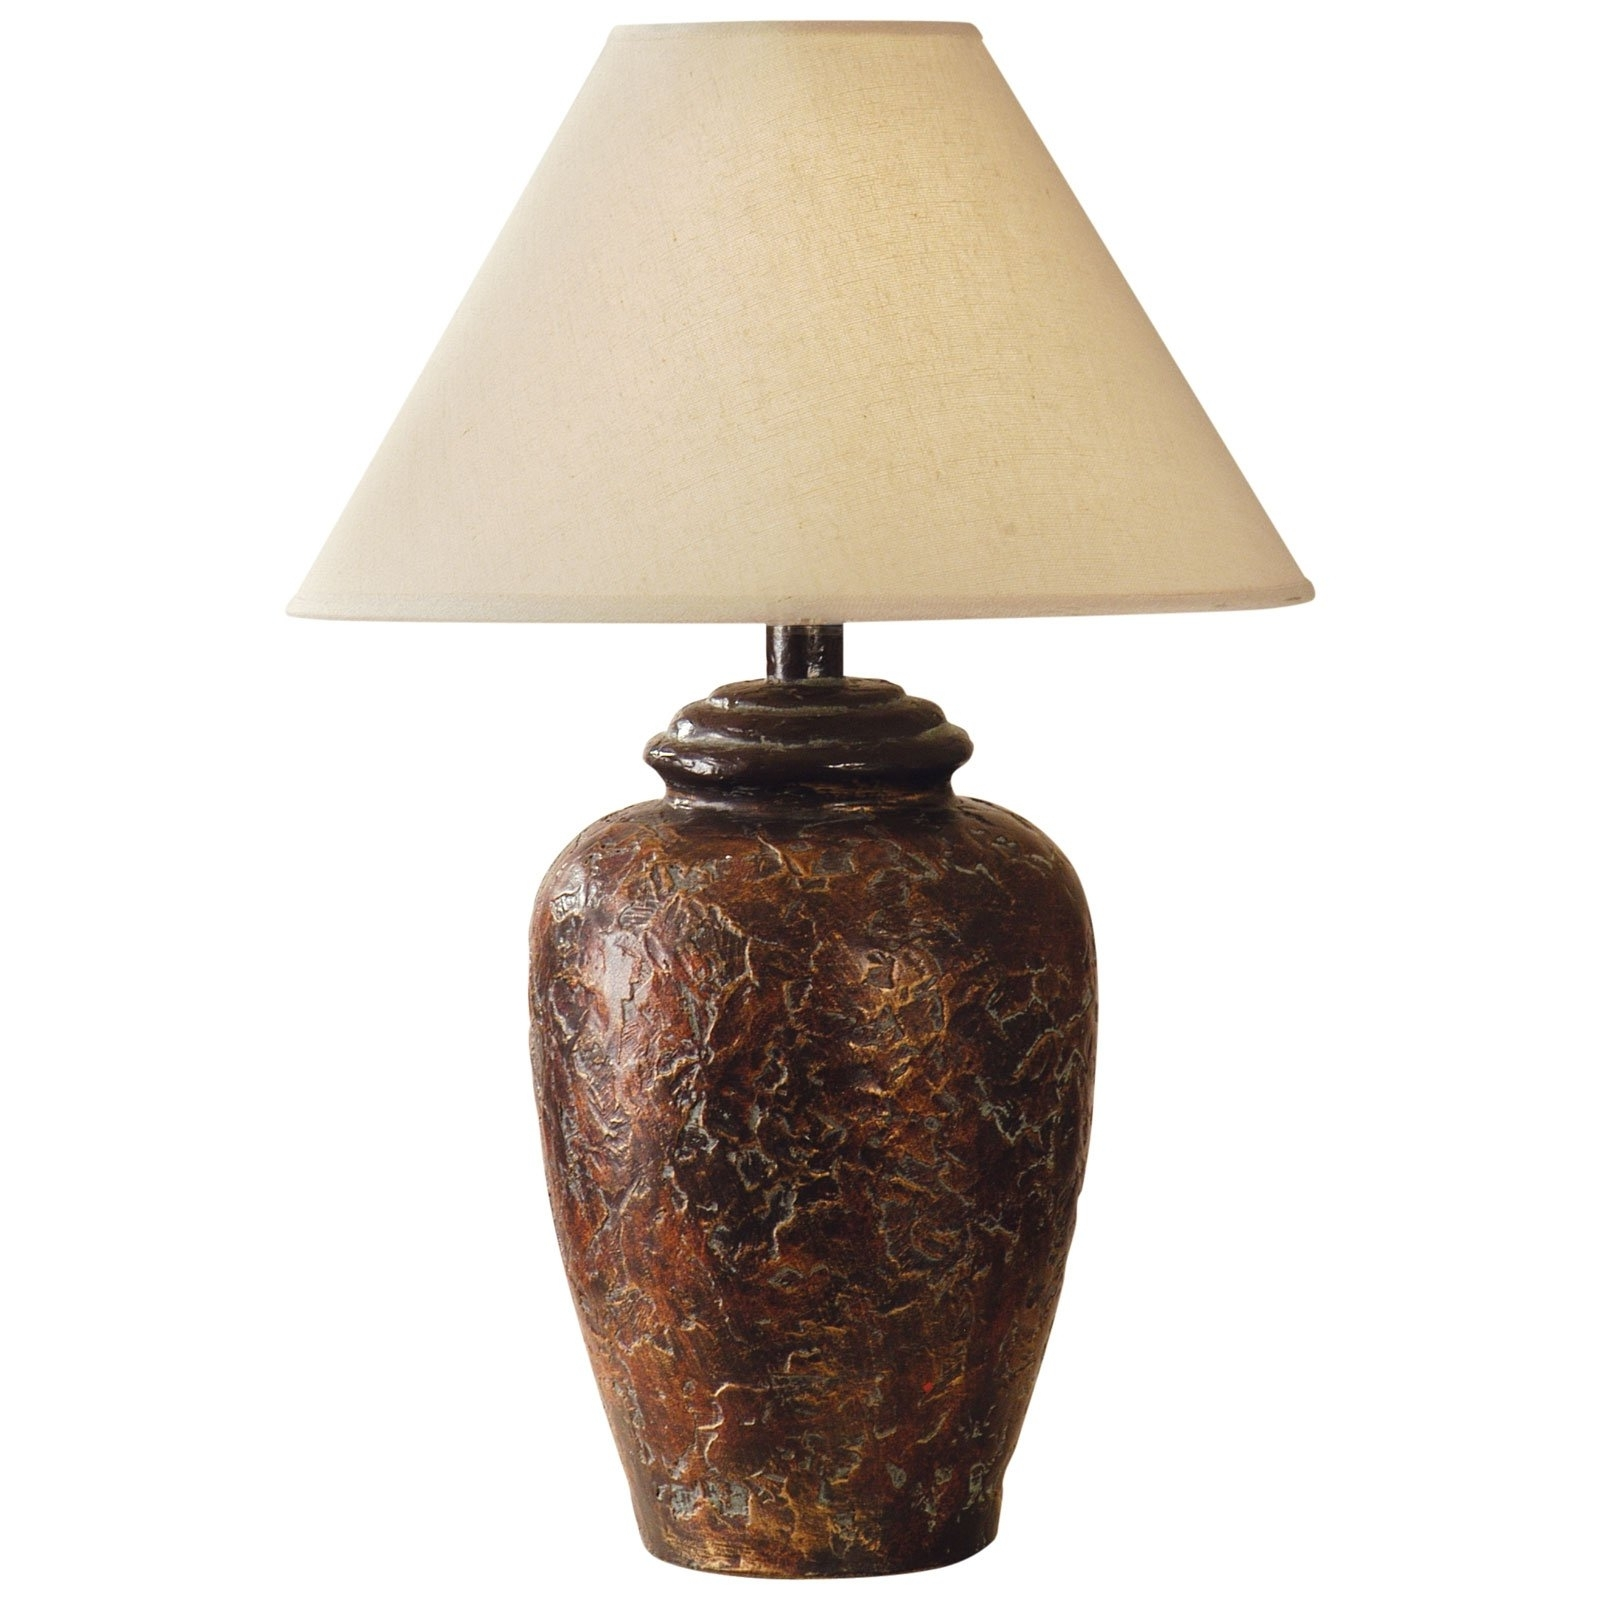 Famous Furniture : Traditional Table Lamps Oregonuforeview Home Furniture Within Traditional Table Lamps For Living Room (View 8 of 15)